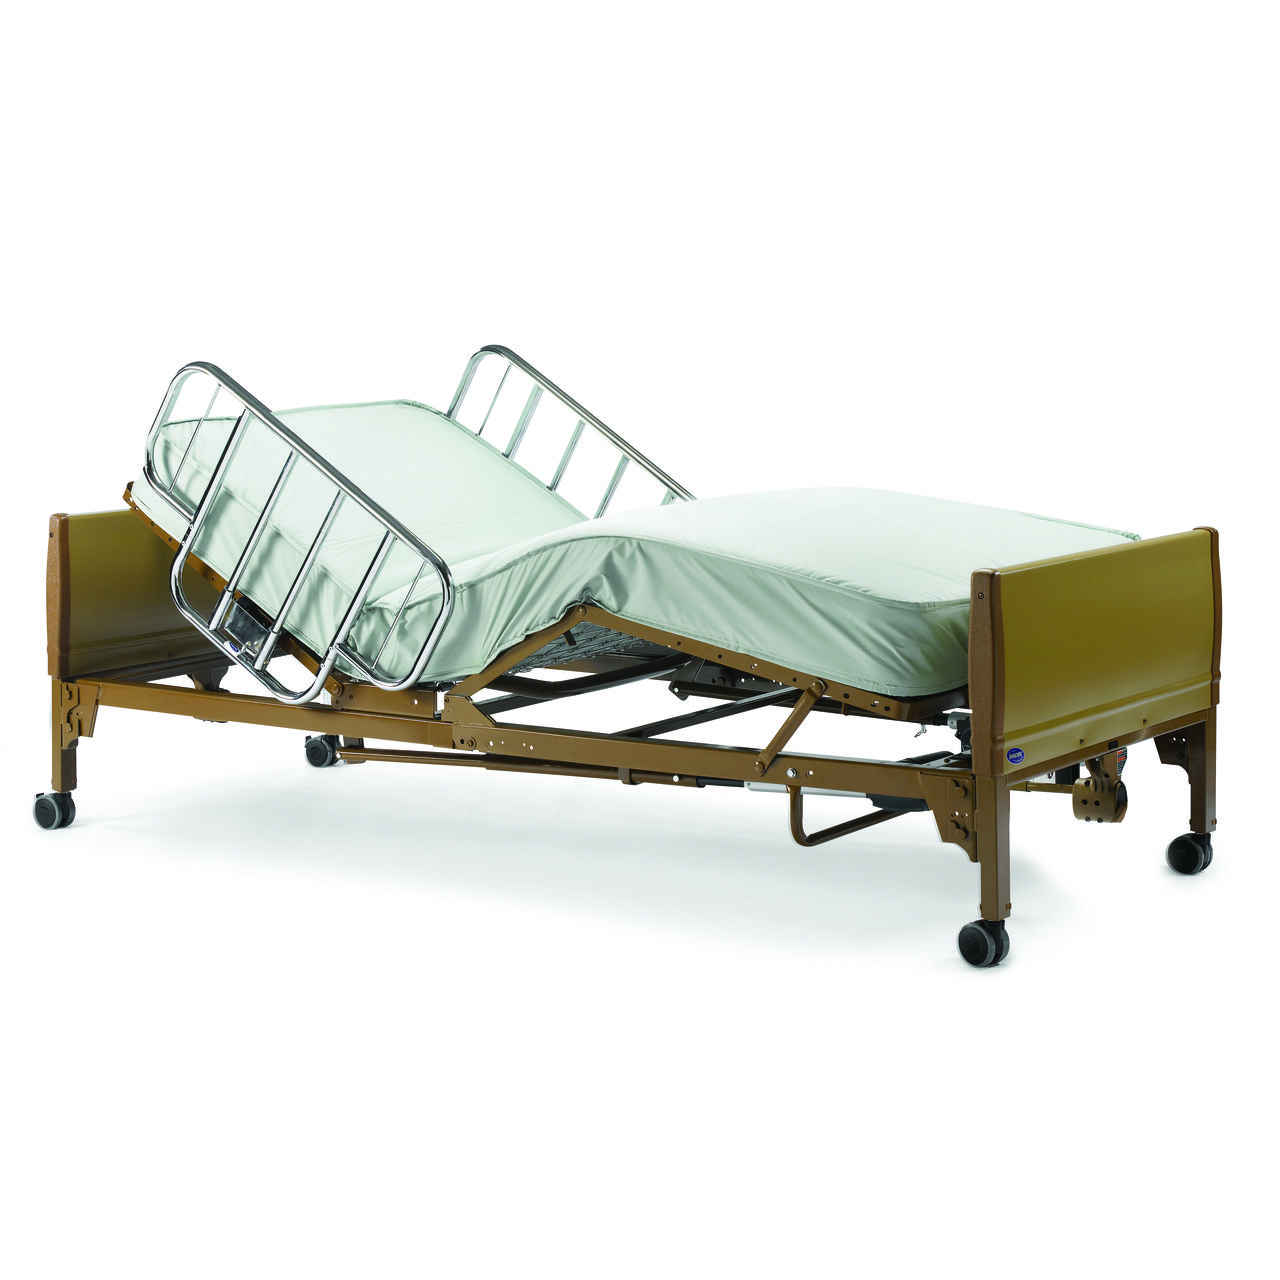 Invacare Full Electric Bed Hospital bed, Bed, Used